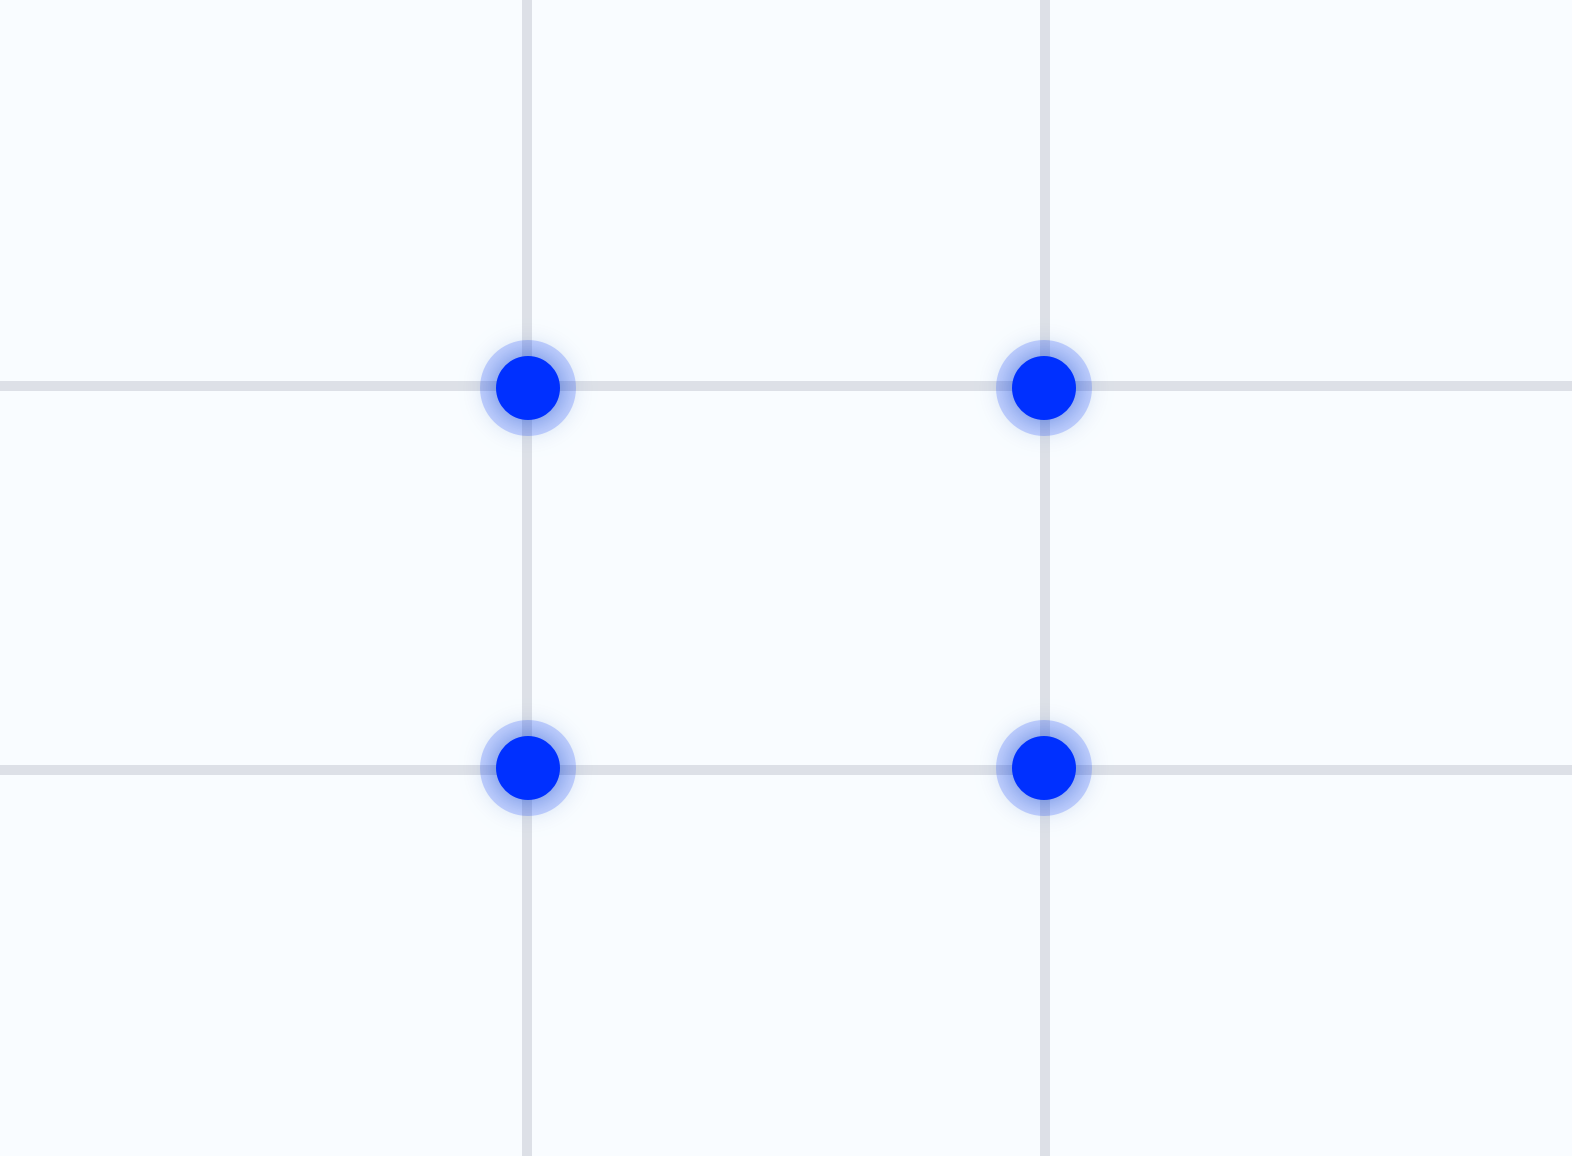 The Rule of Thirds grid, which helps to use the golden ratio in web design, with the focus points marked.